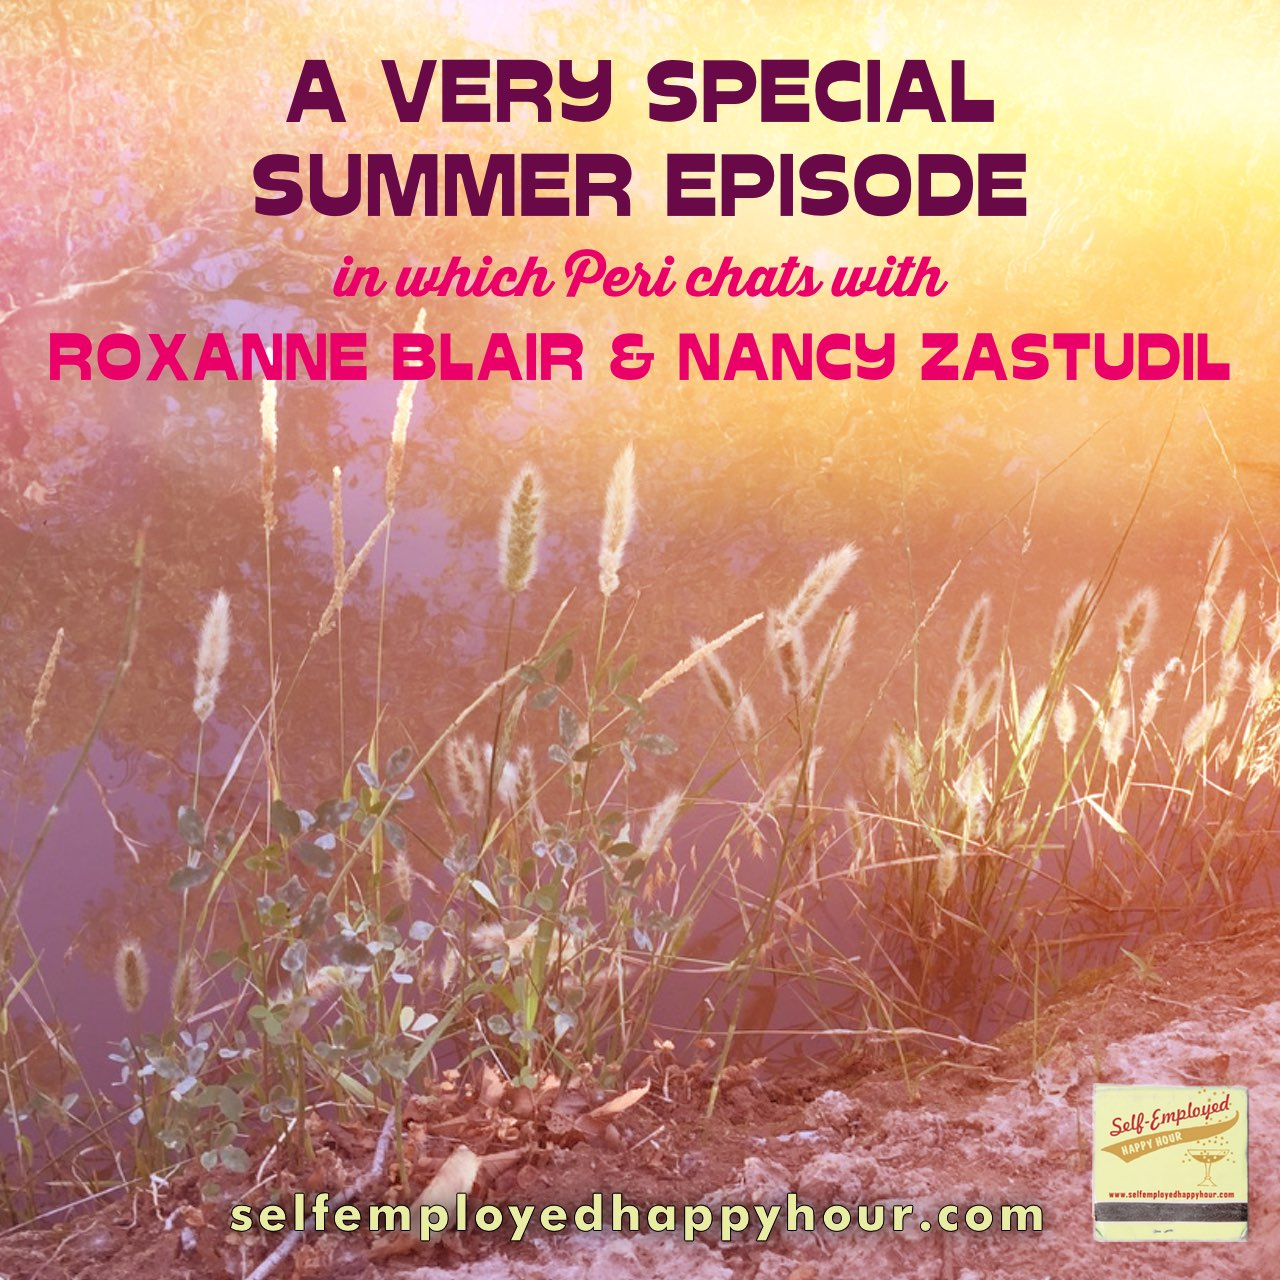 Very Special Summer Episode with Roxanne Blair and Nancy Zastudil